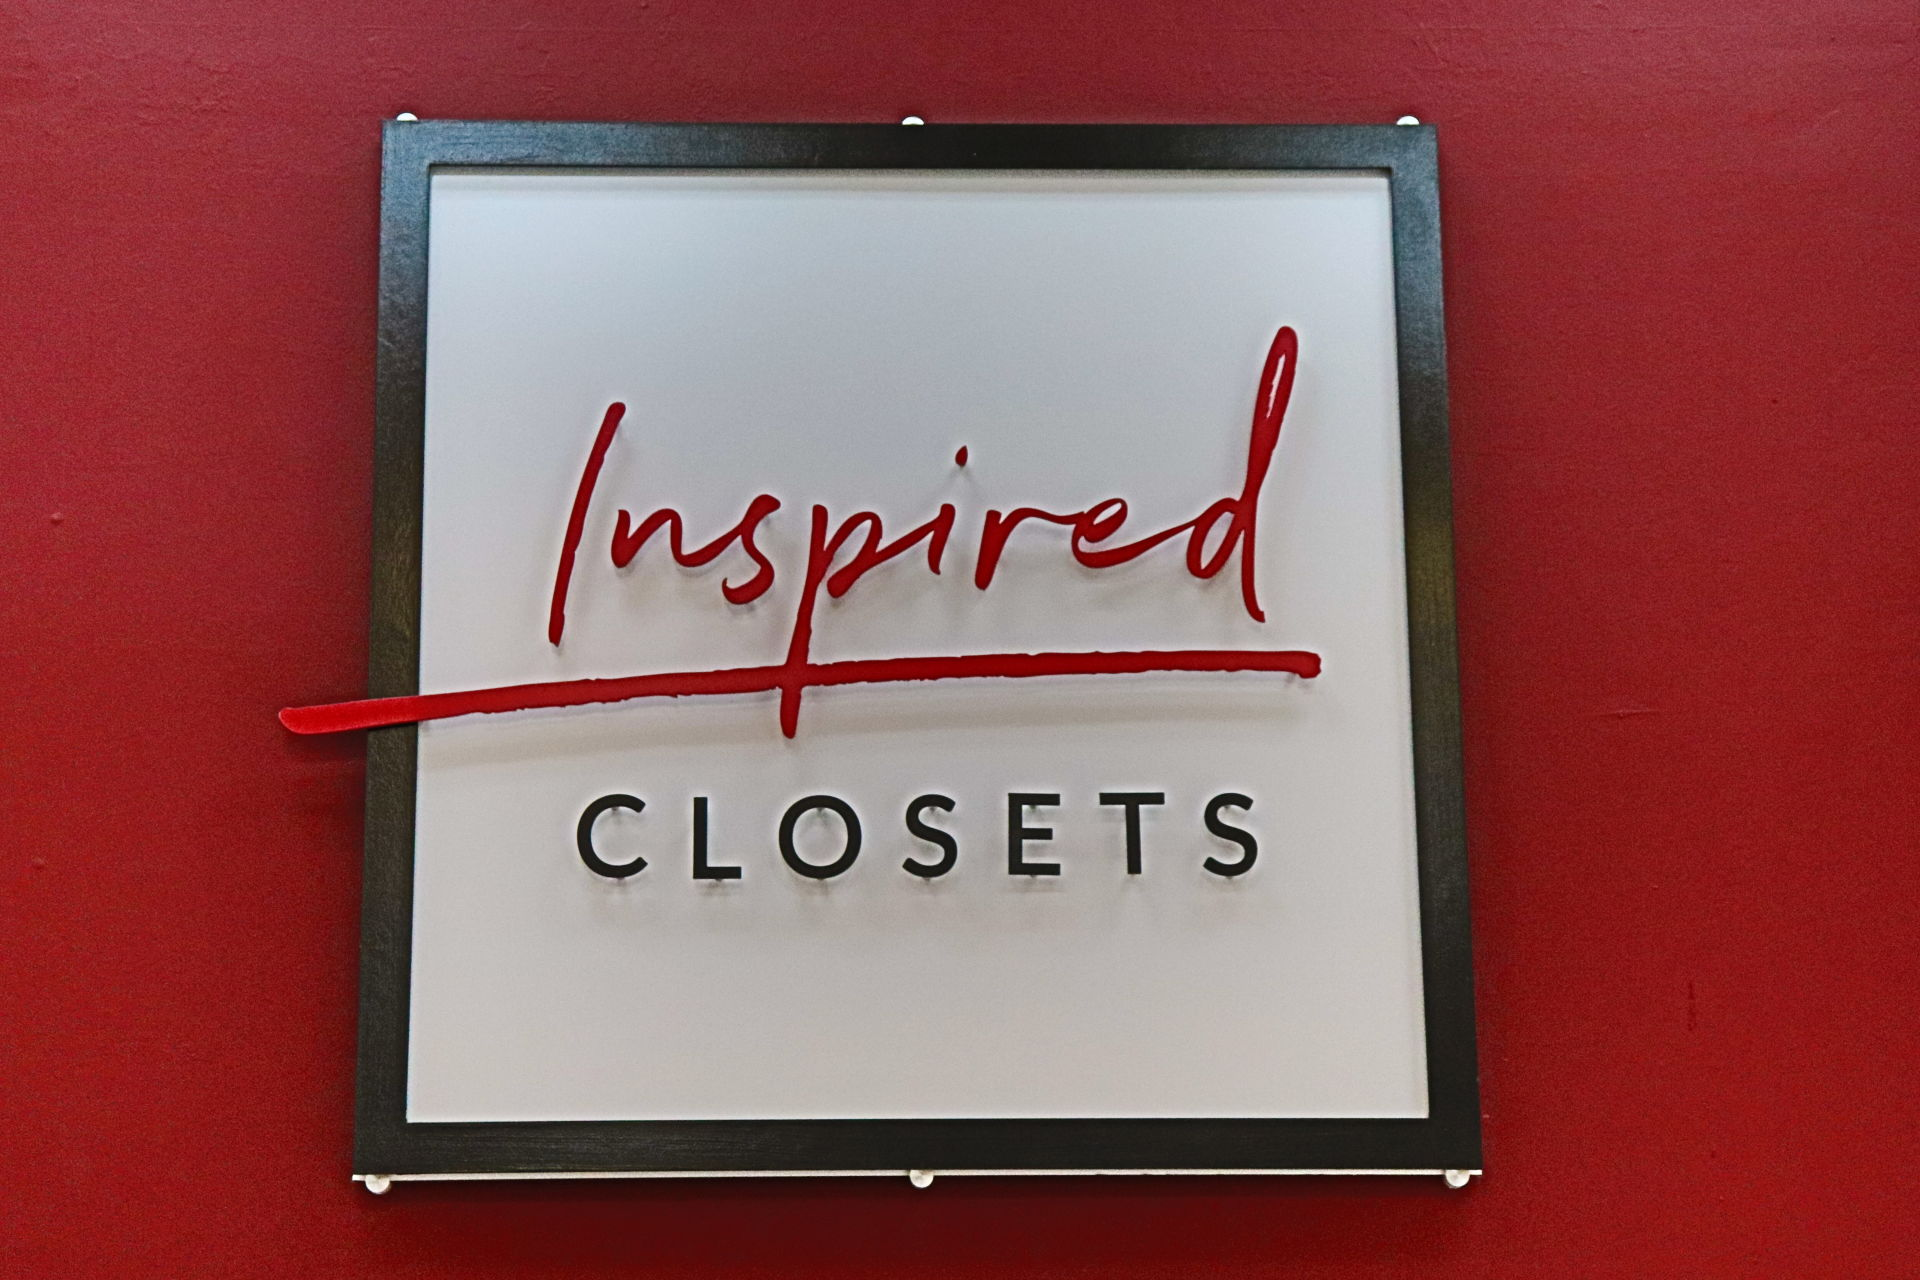 Inside the Markets – Chris Riesen from Inspired Closets